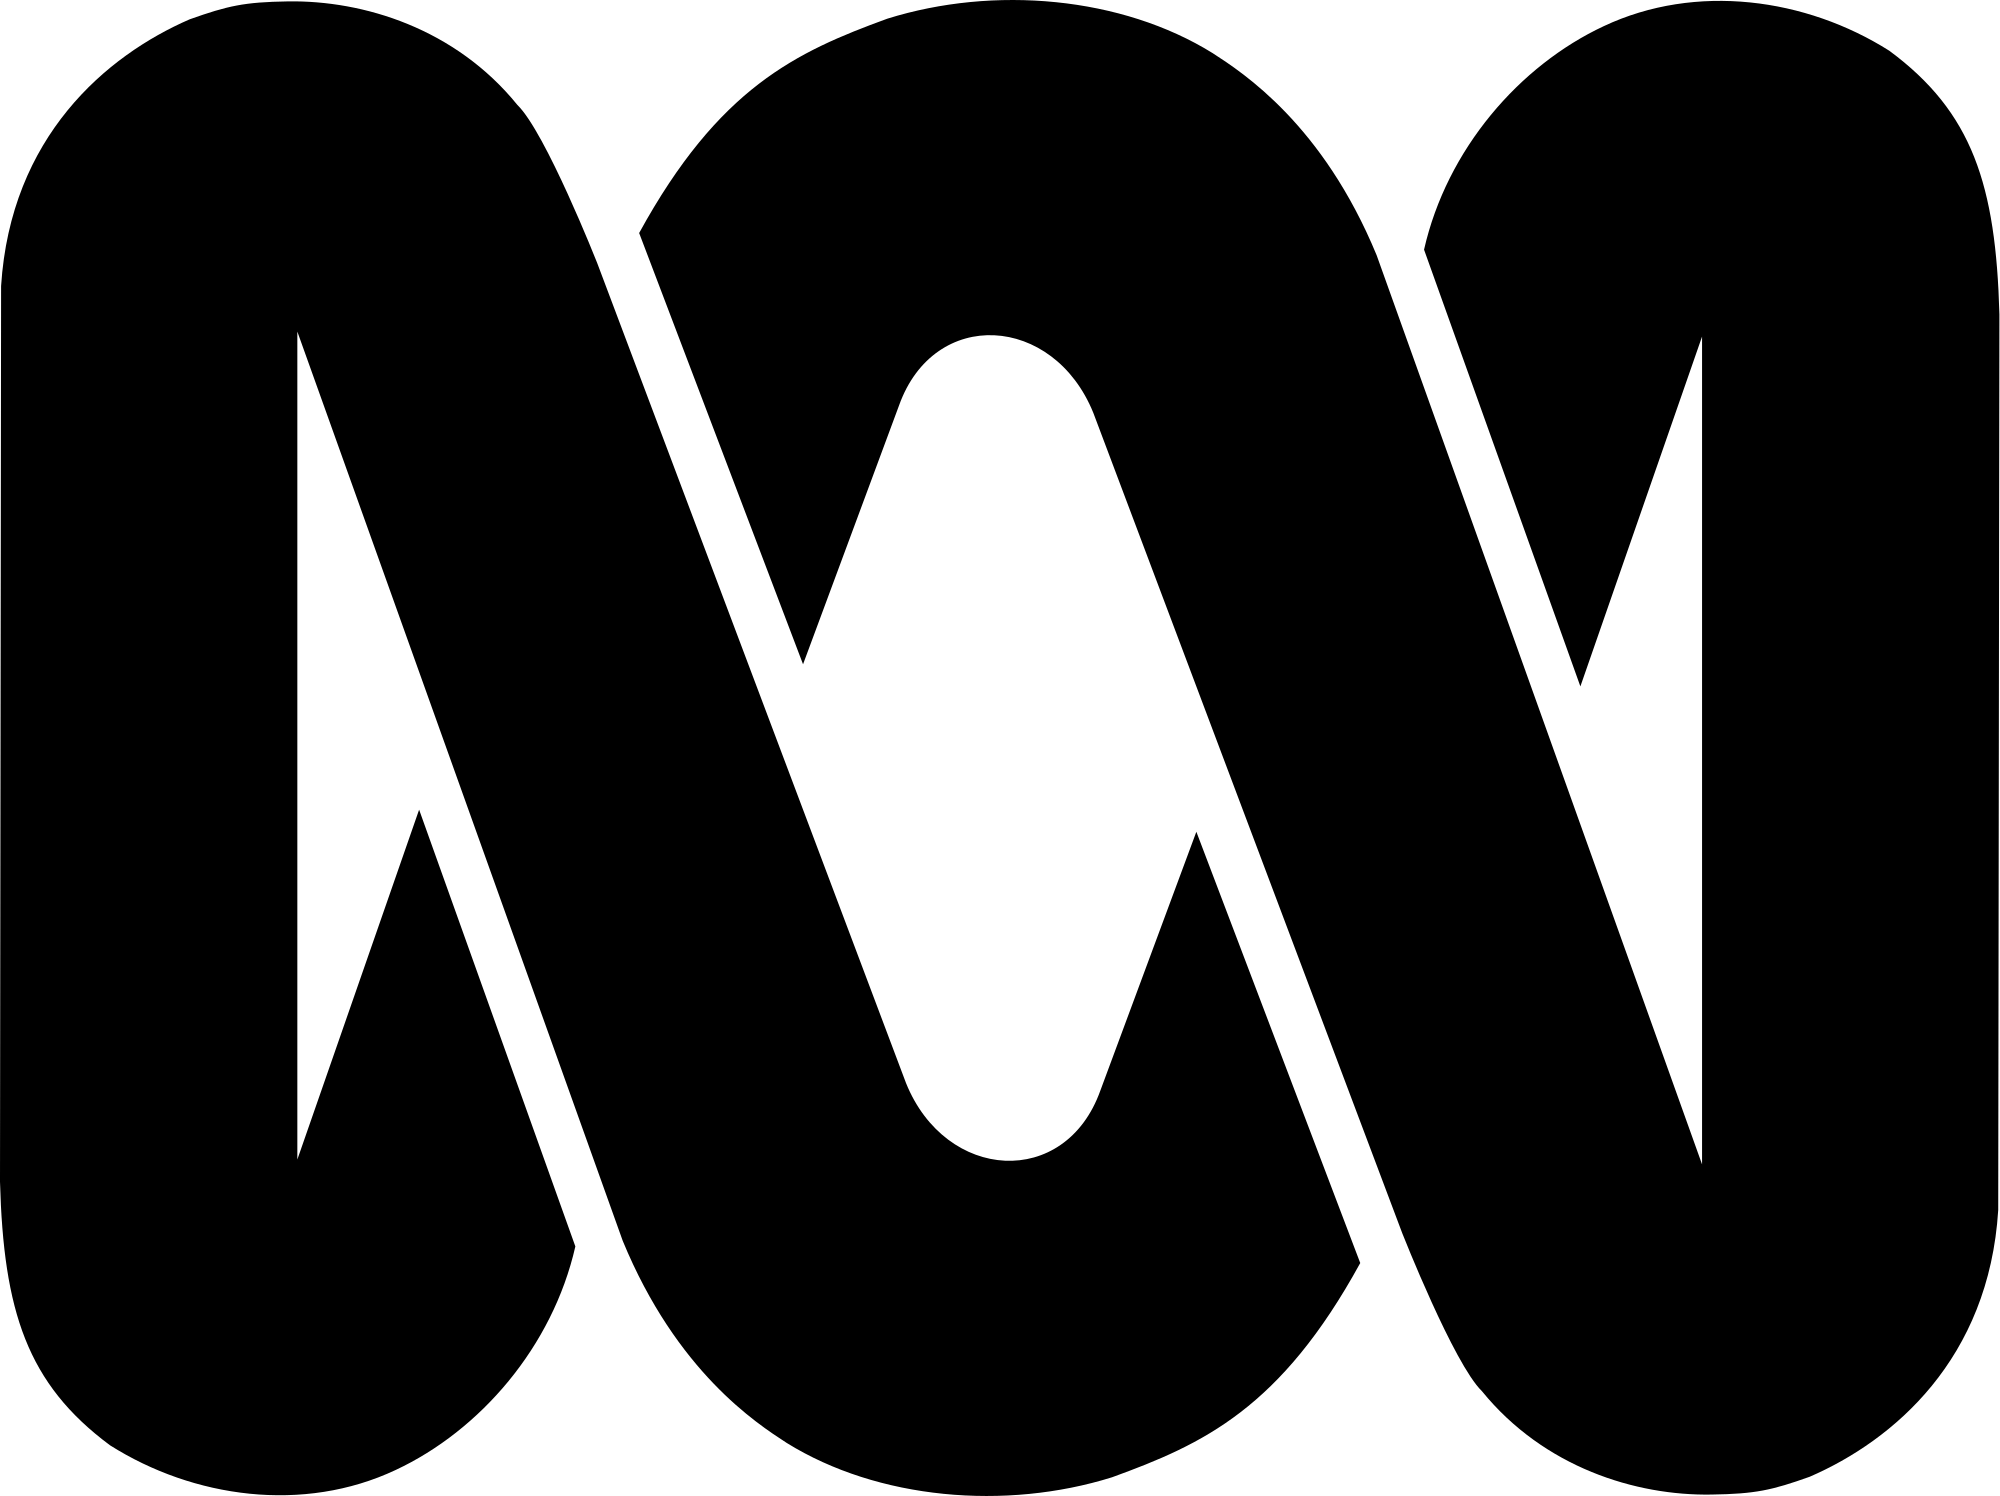 Logo of ABC Australia